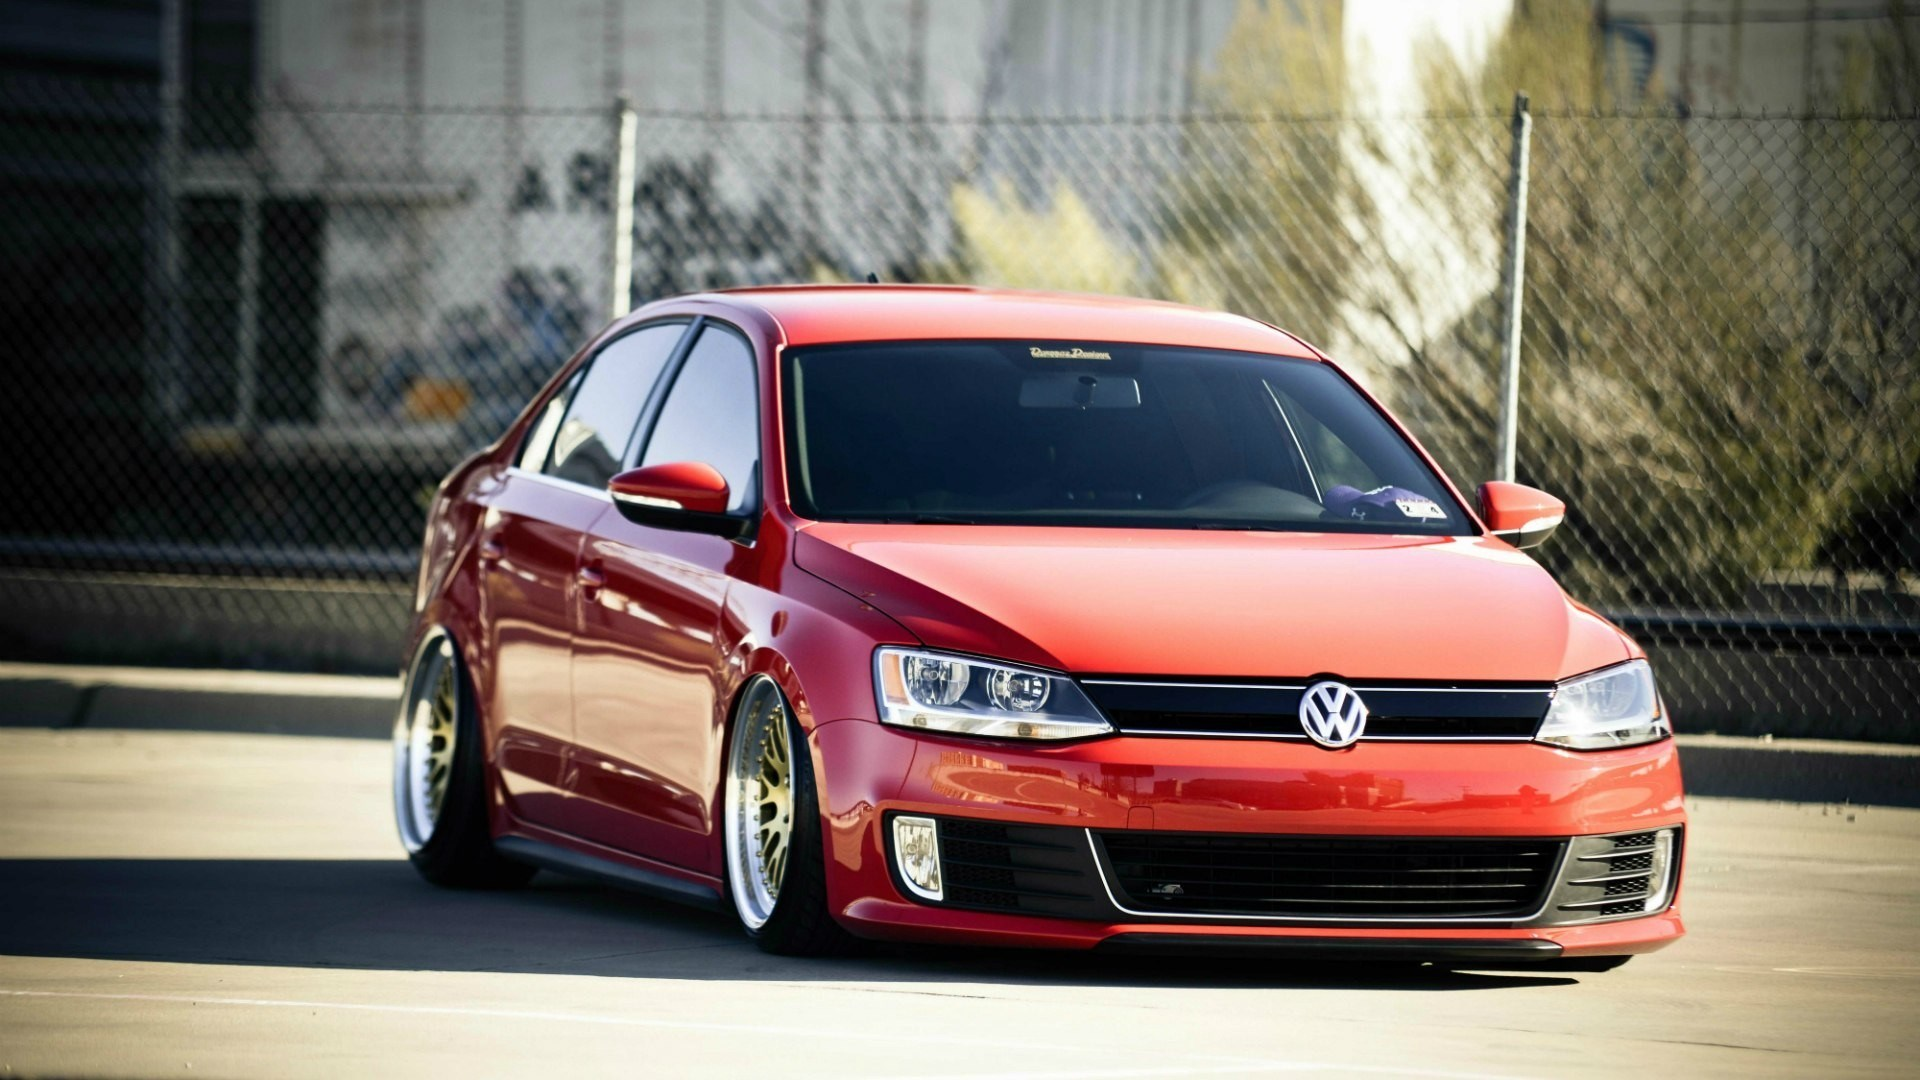 Car Volkswagen Jetta Tuning wallpaper